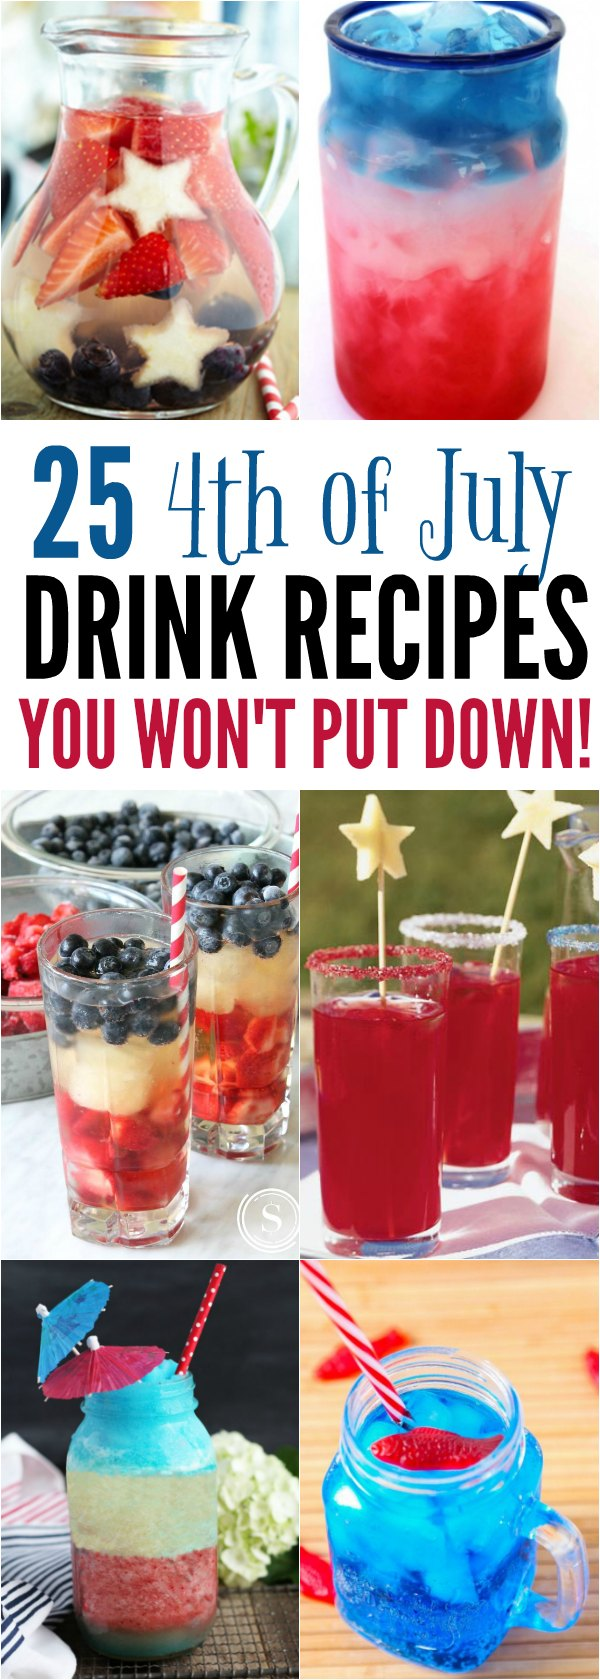 Check out these 4th of July Drink Recipes sure to please a crowd. Choose from 25 Fourth of July Drinks you won't want to put down.